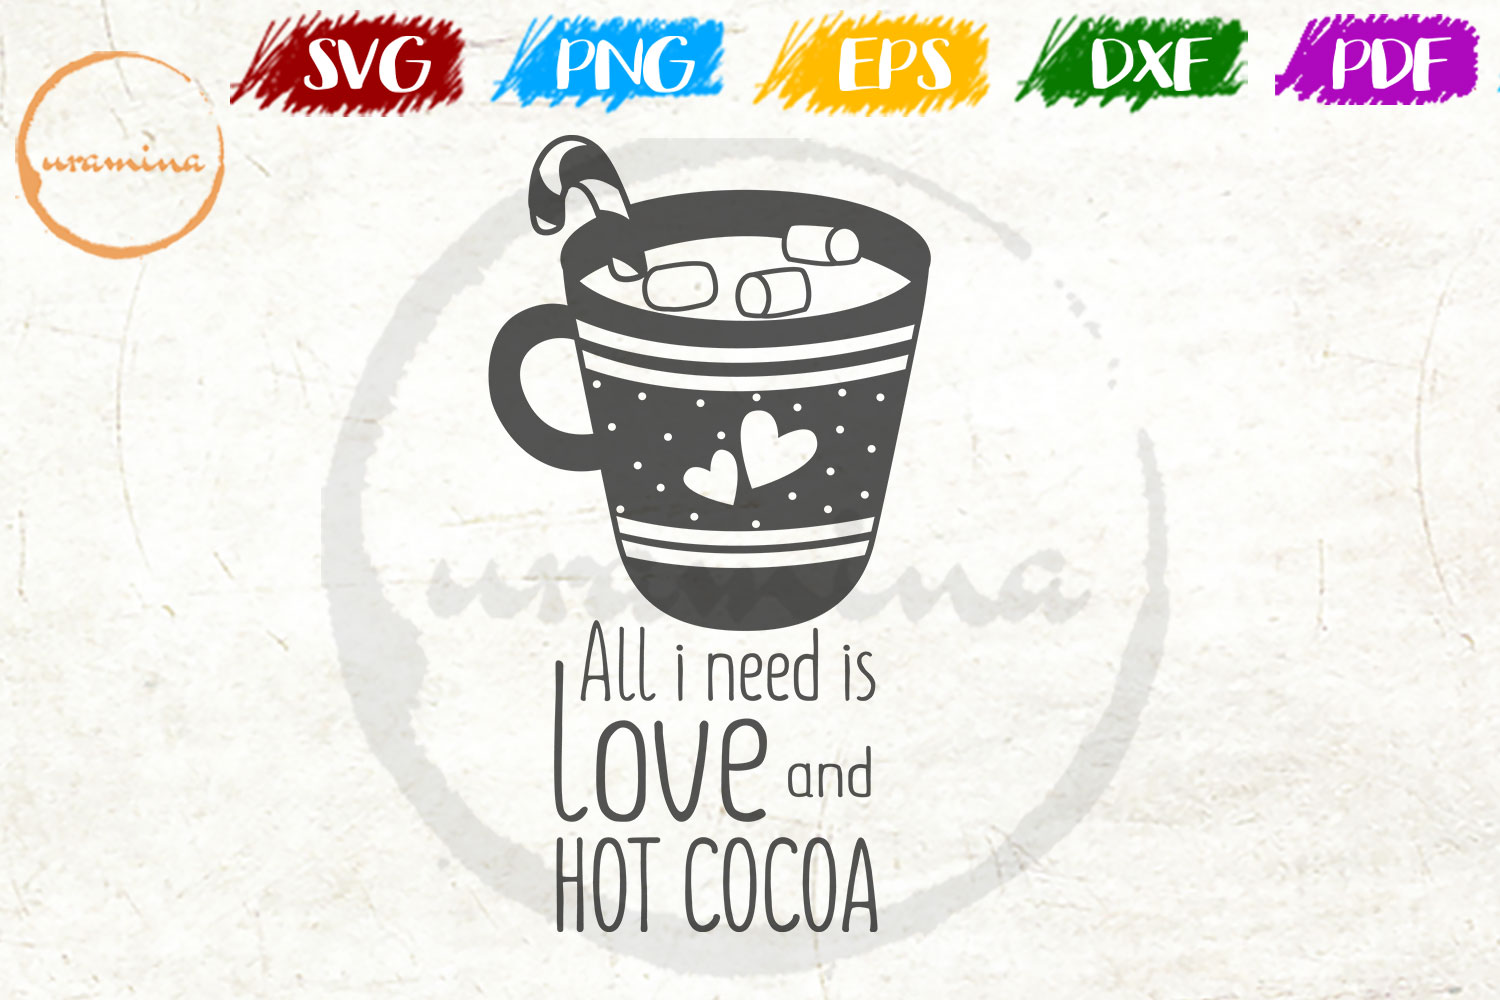 All I Need Is Love And Hot Cocoa Valentine SVG PDF PNG example image 1